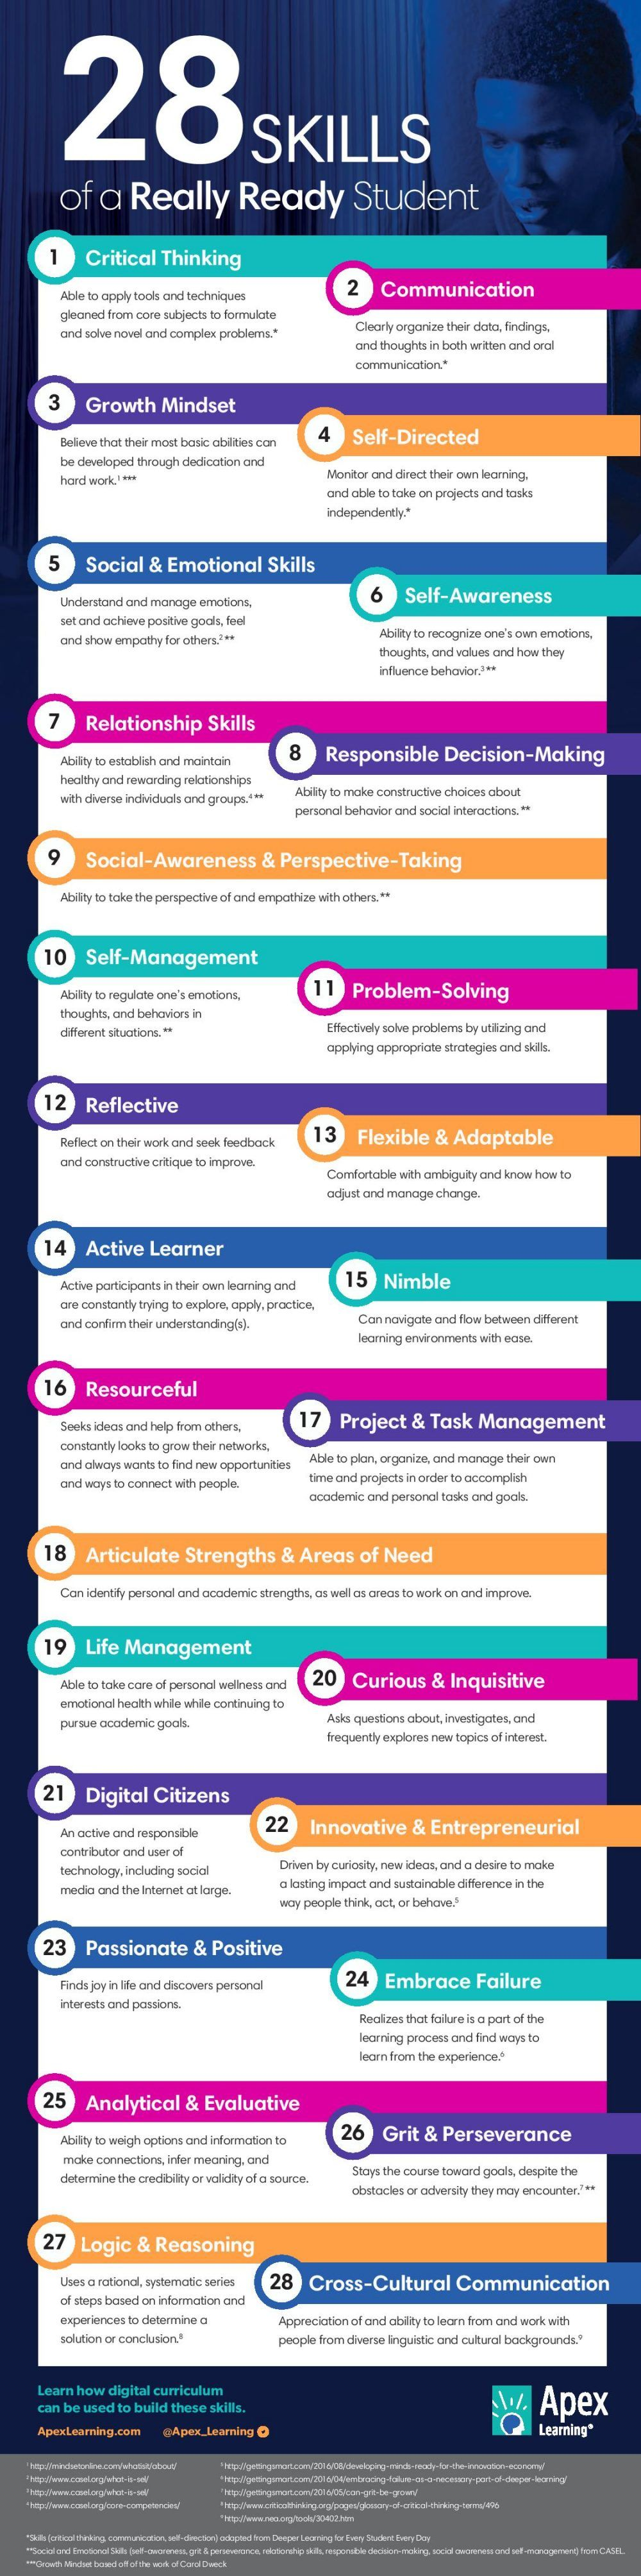 28 skills of a really ready student infographic career